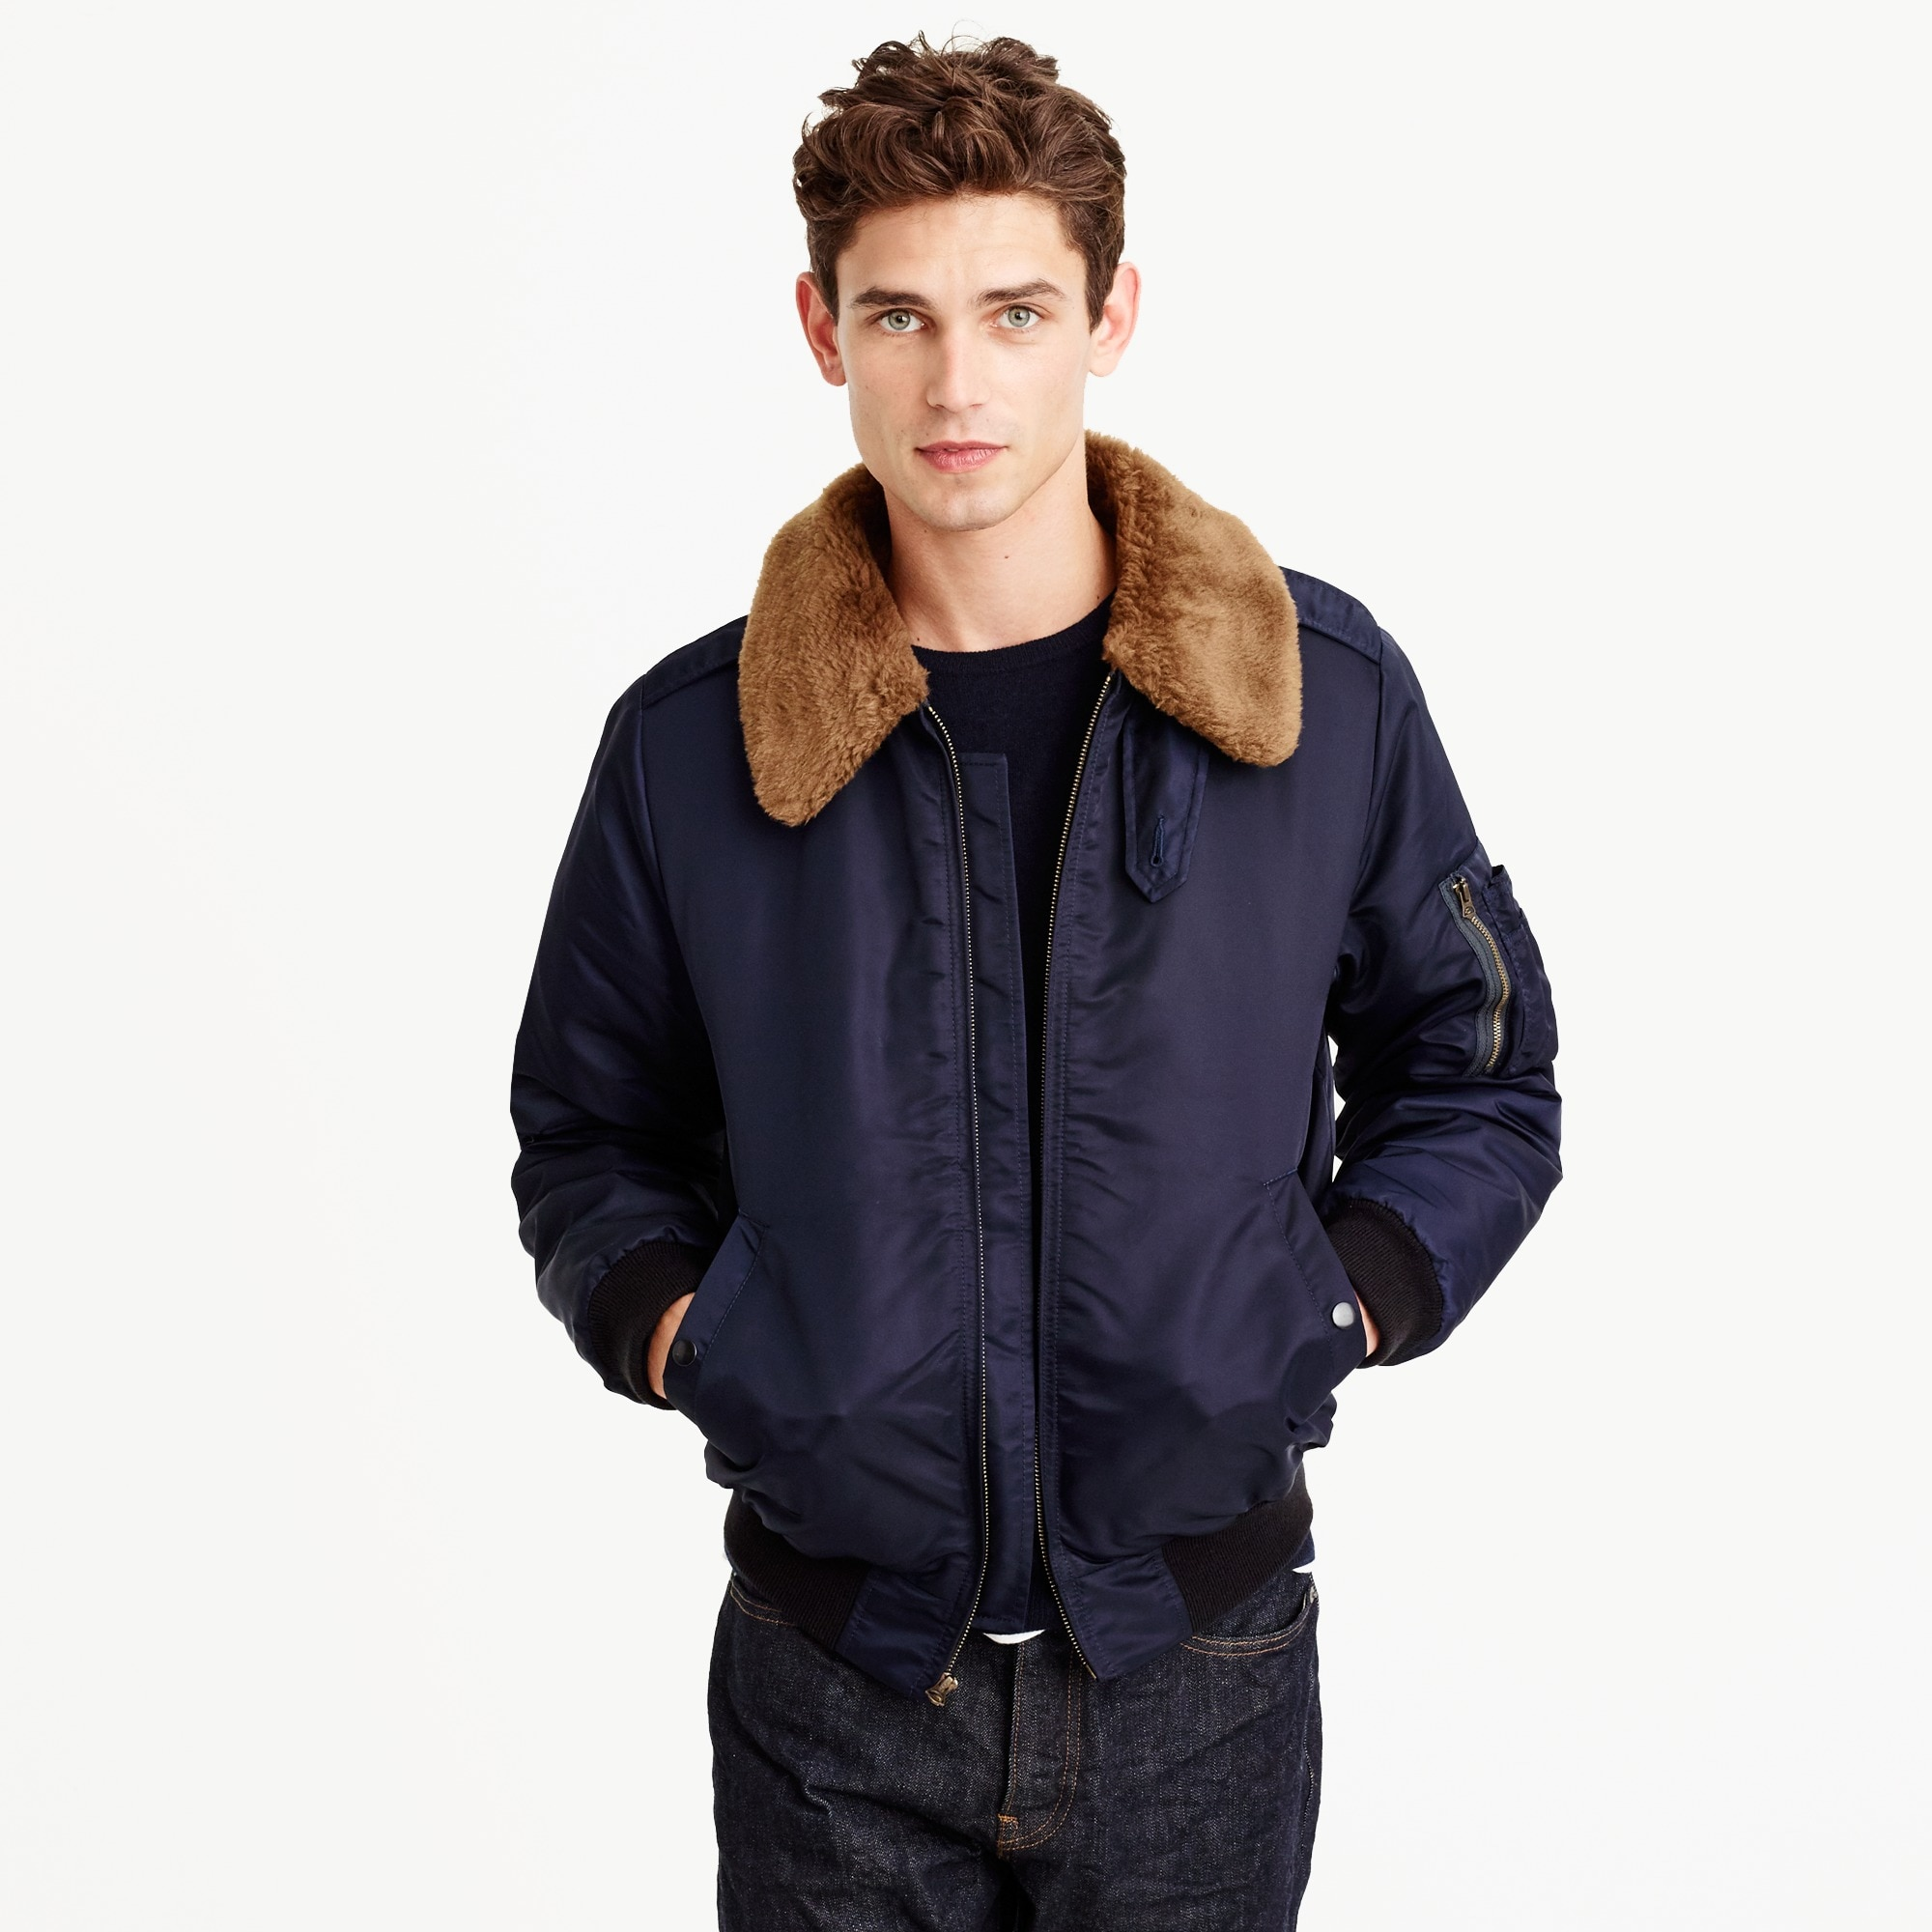 Nylon-twill bomber jacket